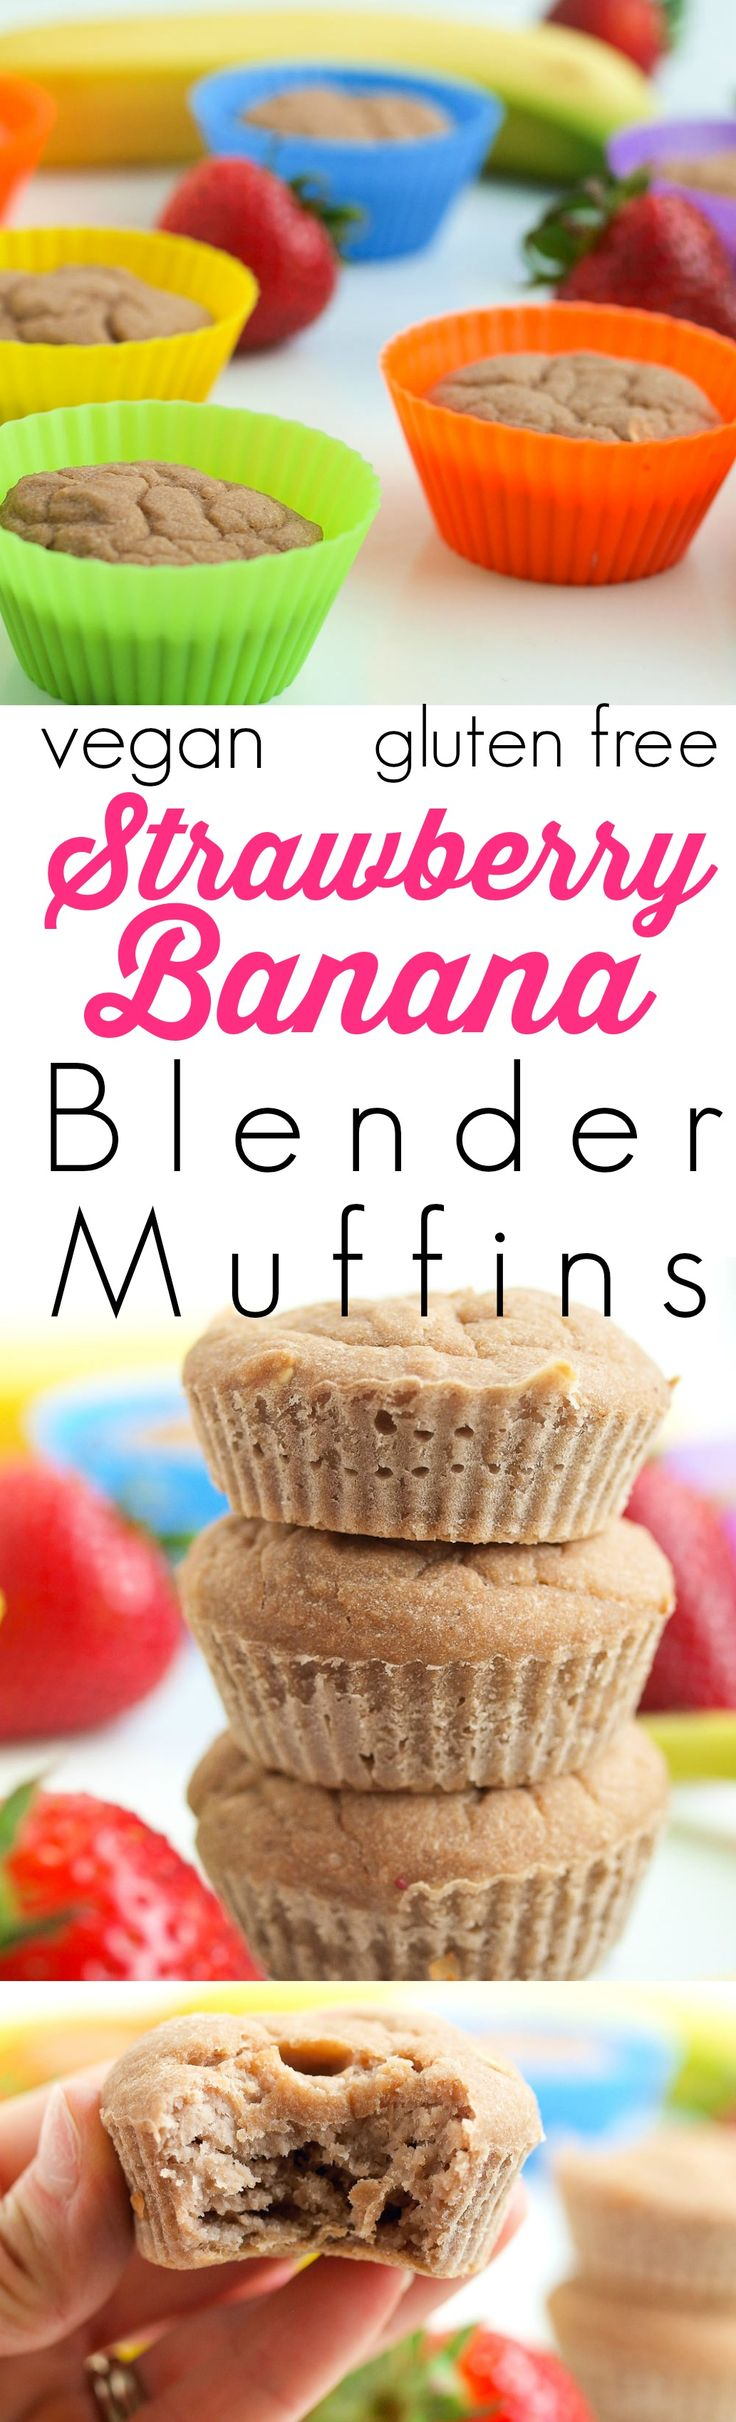 muffins blender or shoes nut free  sale They vegan   on part  These best oil the and Strawberry made Banana gluten free  boys are You with Pinteres    no sports and sugar are refined   ble